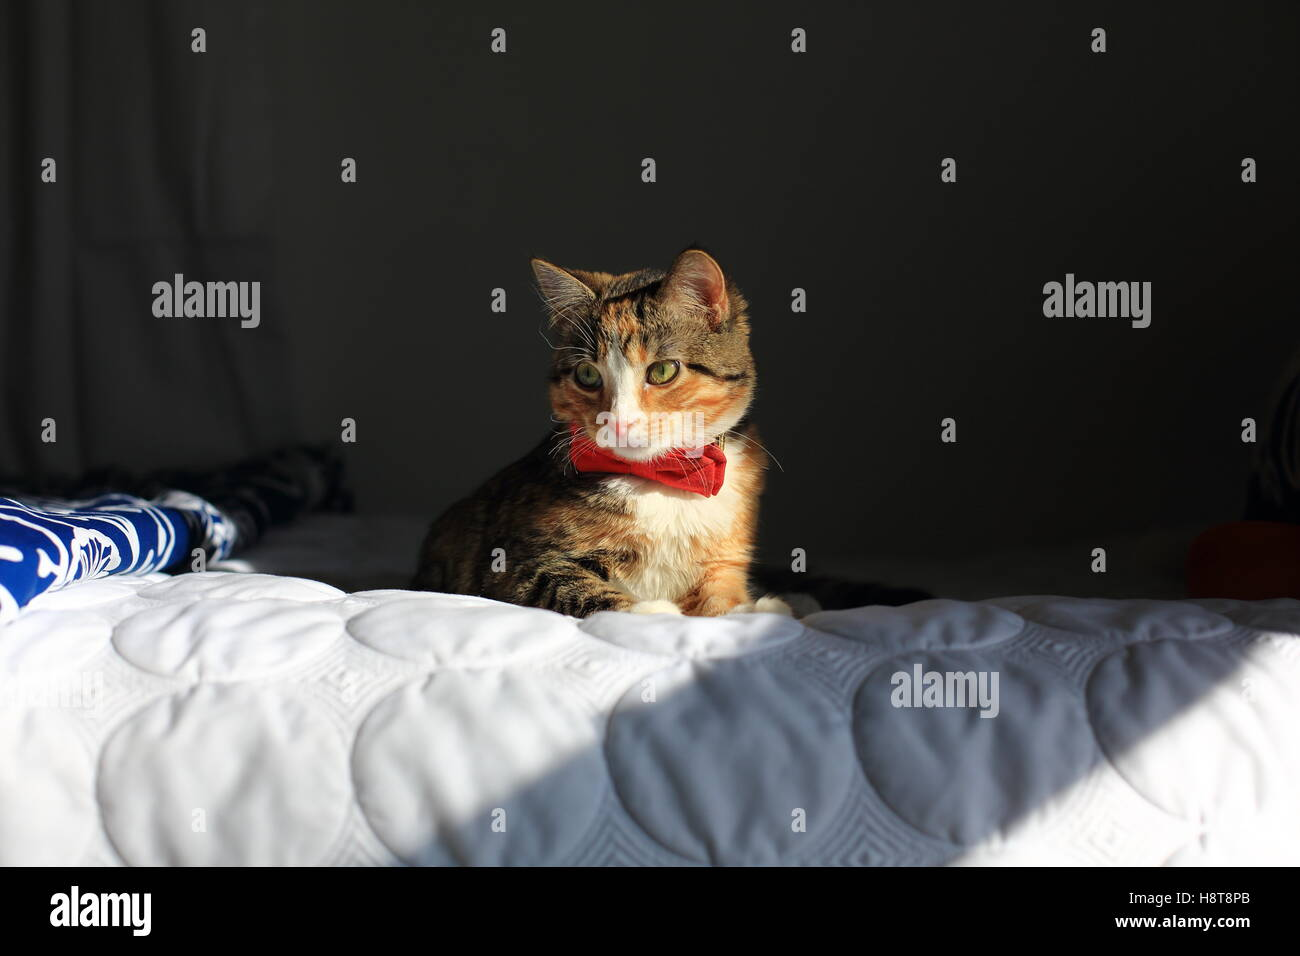 A orange, black and white speckled housecat wearing a bowtie rests on a bed in dramatic light. - Stock Image